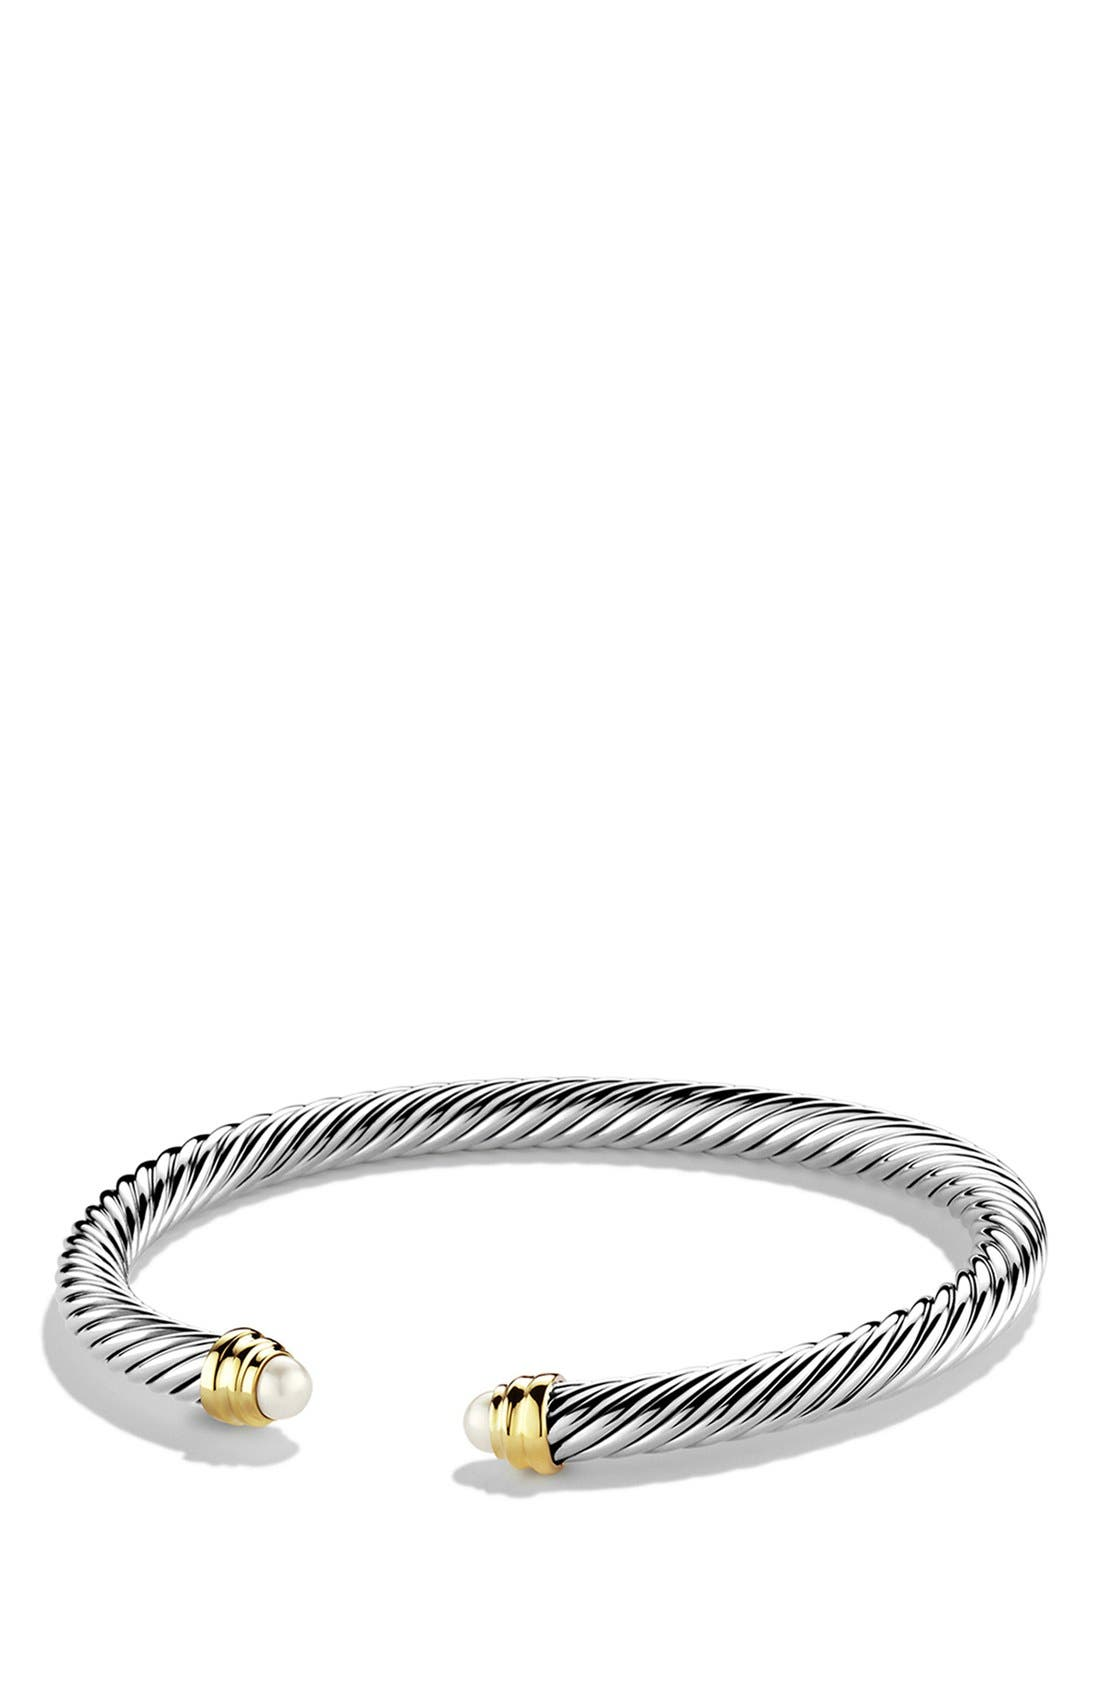 Cable Classics Bracelet with Semiprecious Stones & 14K Gold, 5mm,                         Main,                         color, Pearl